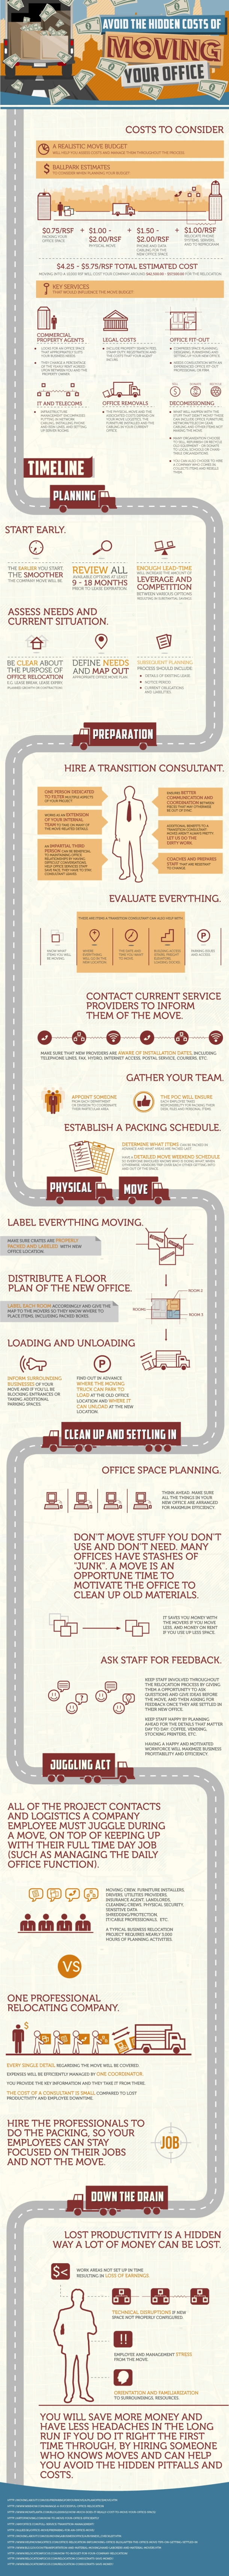 avoid-the-hidden-costs-of-an-office-move_521285a44c1a6